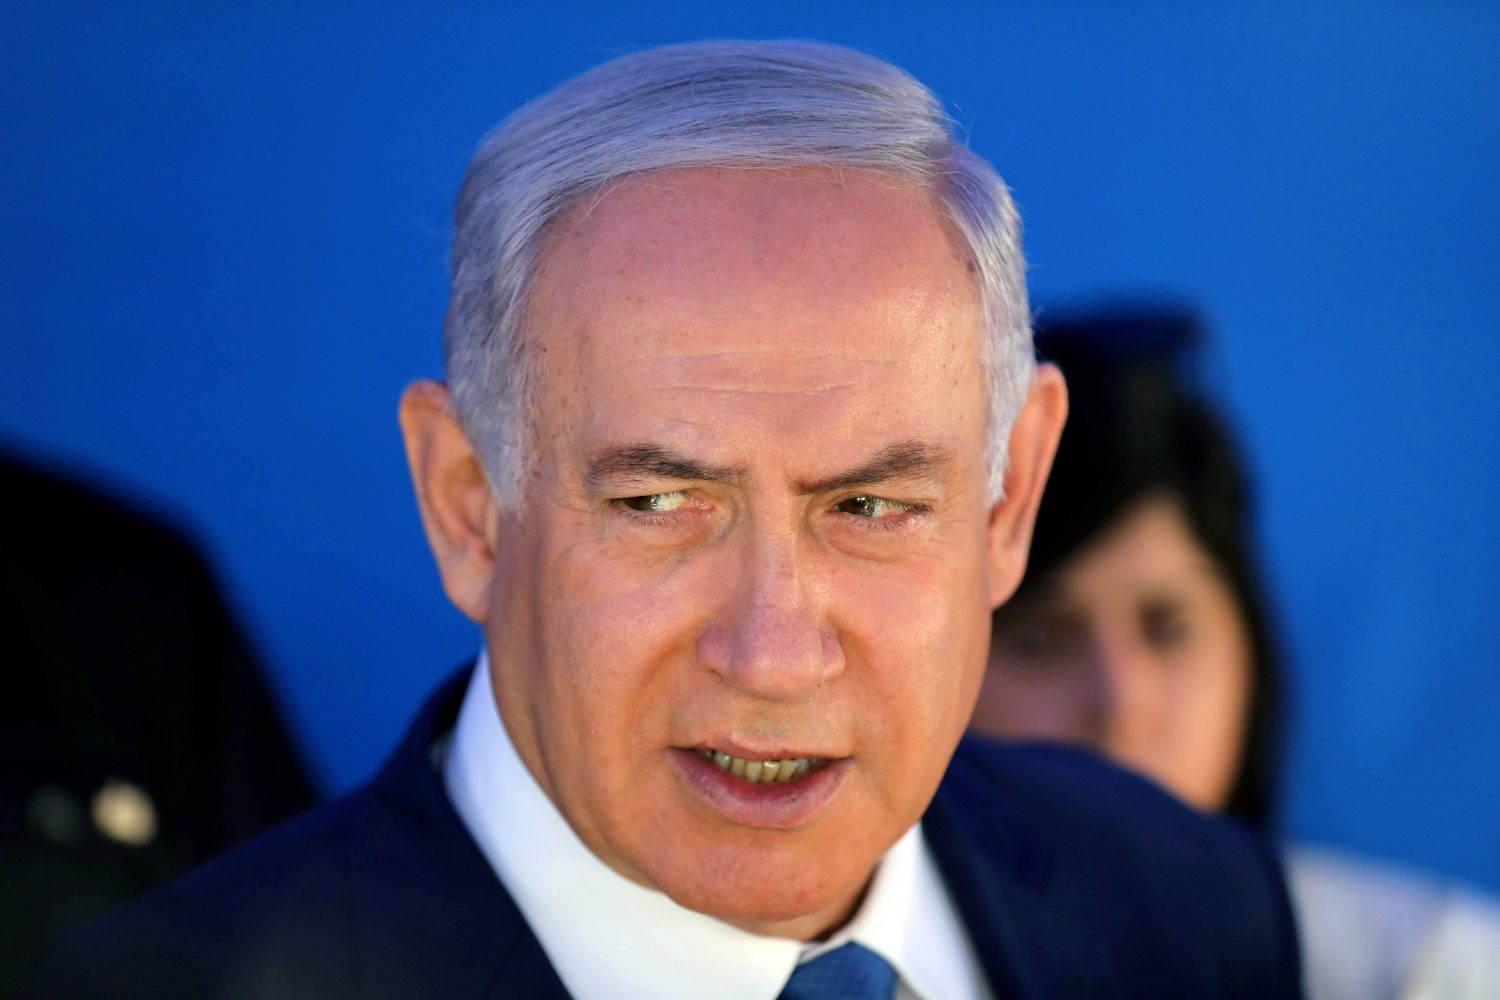 FILE PHOTO: Israeli Prime Minister Benjamin Netanyahu speaks during a cornerstone-laying ceremony for Mobileye's center in Jerusalem August 27, 2019. Abir Sultan/Pool via REUTERS/File Photo